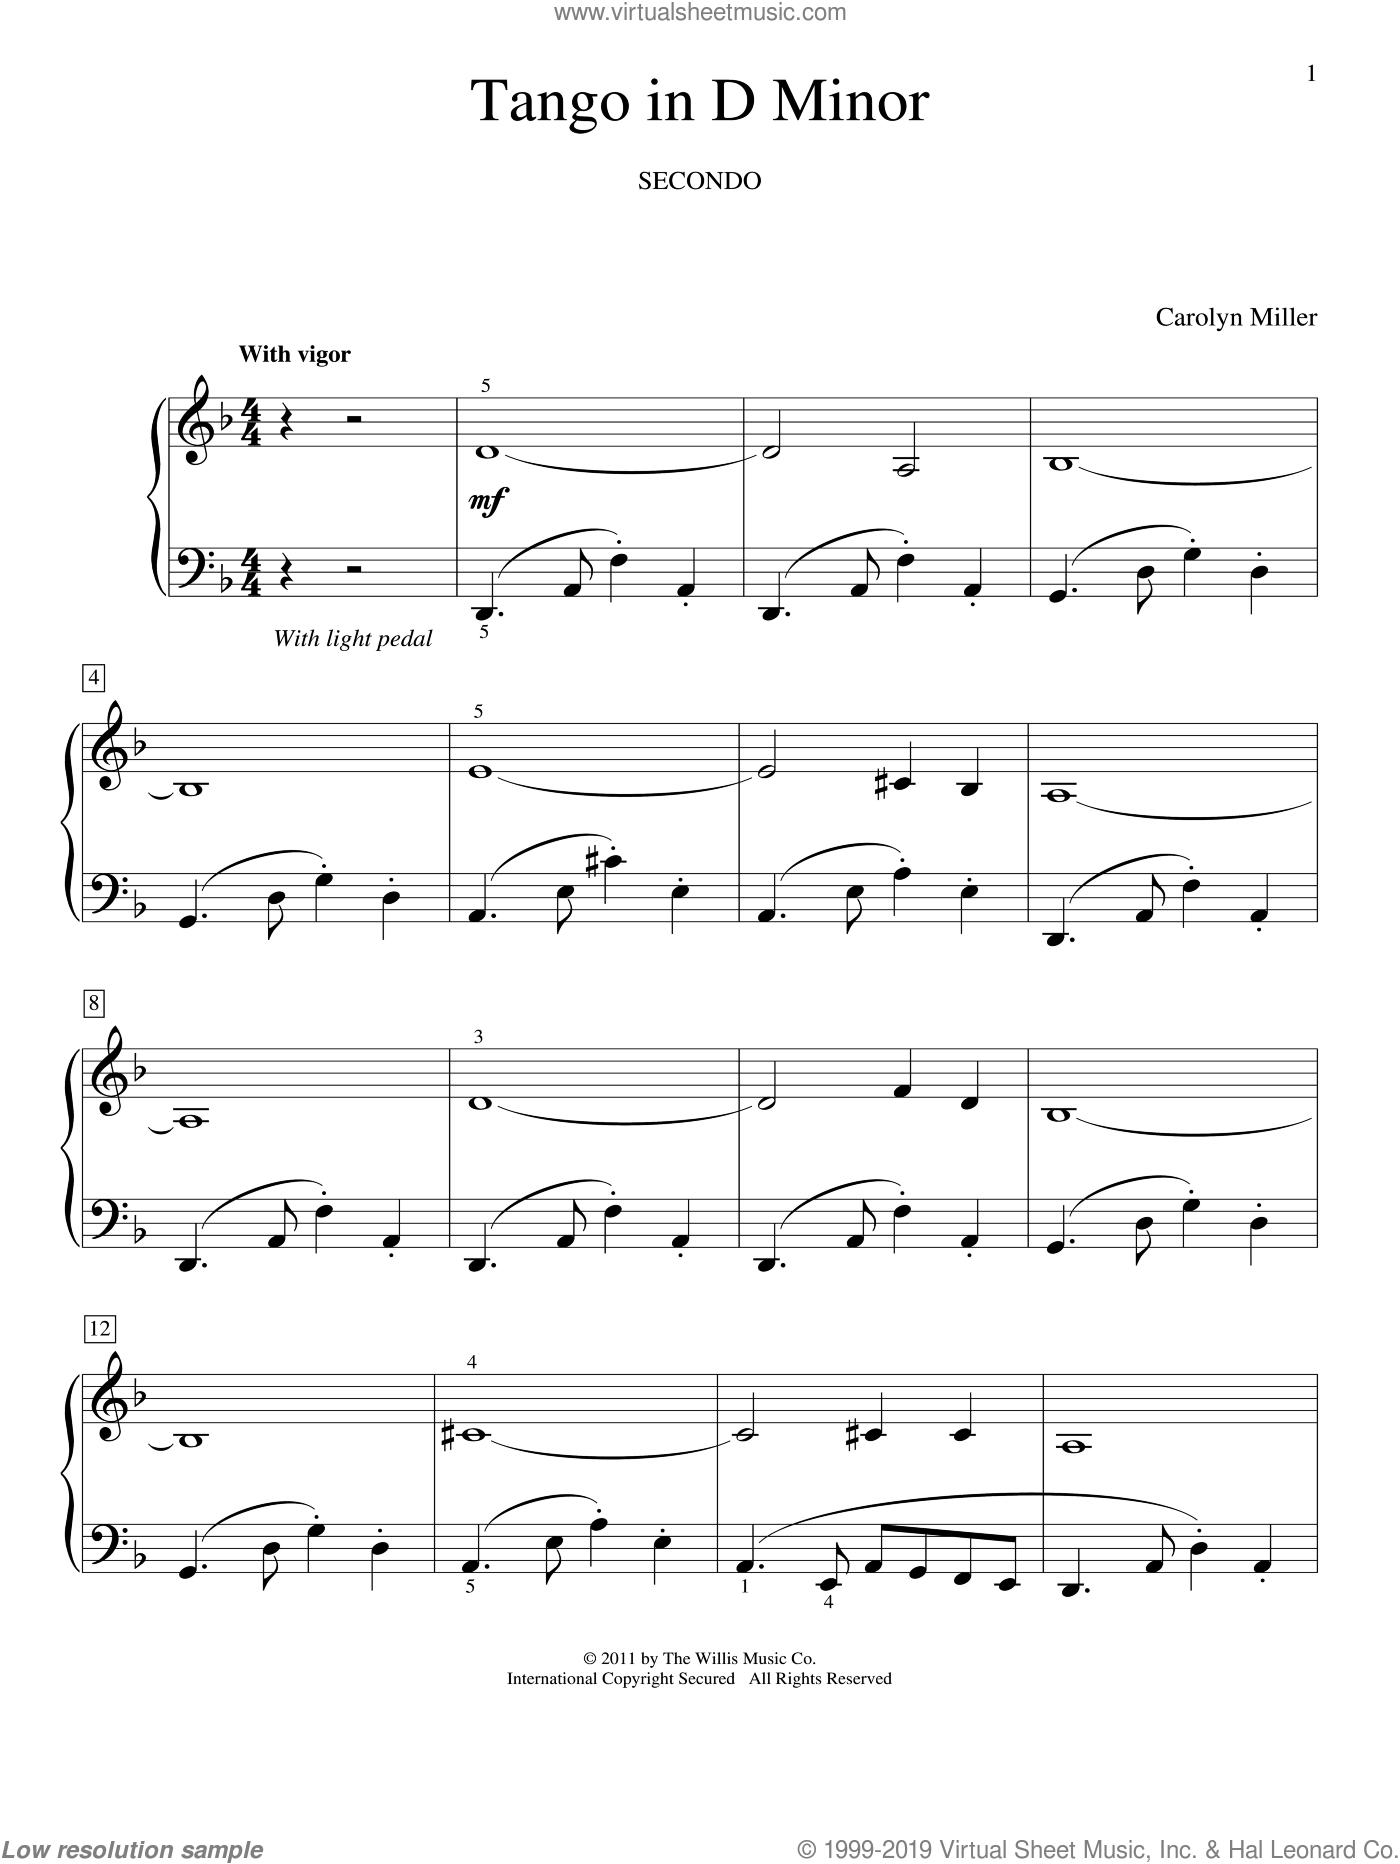 Tango In D Minor sheet music for piano four hands by Carolyn Miller, intermediate skill level